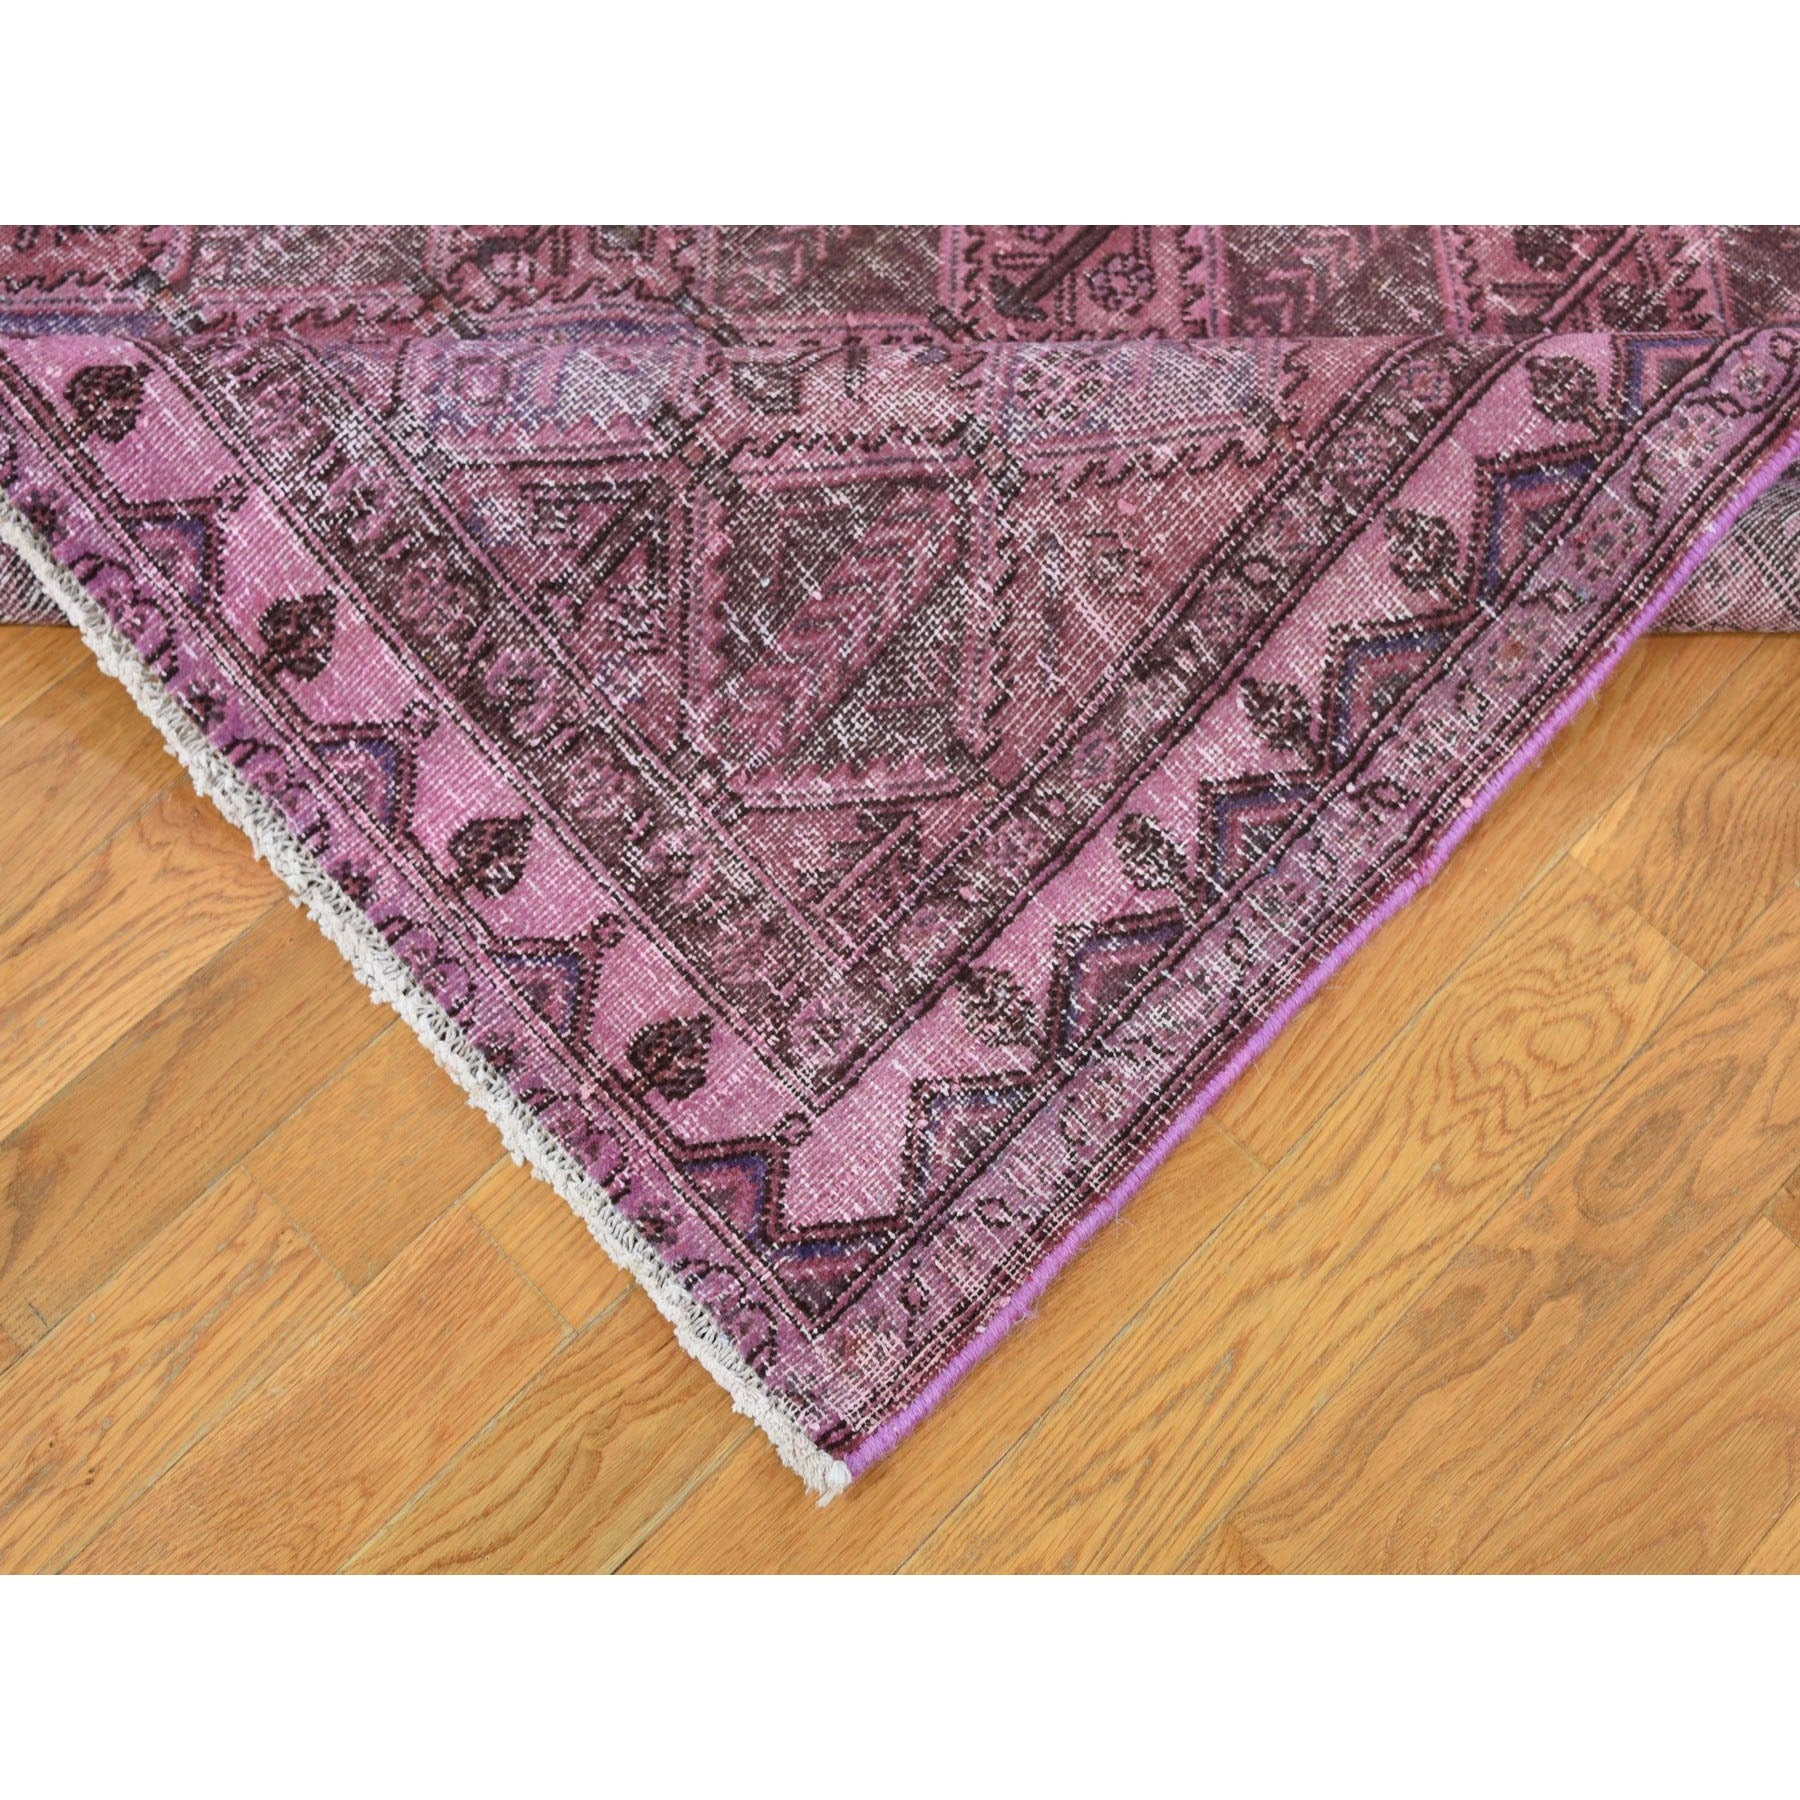 "Handmade Overdyed & Vintage Rectangle Rug > Design# SH47379 > Size: 5'-0"" x 9'-3"" [ONLINE ONLY]"